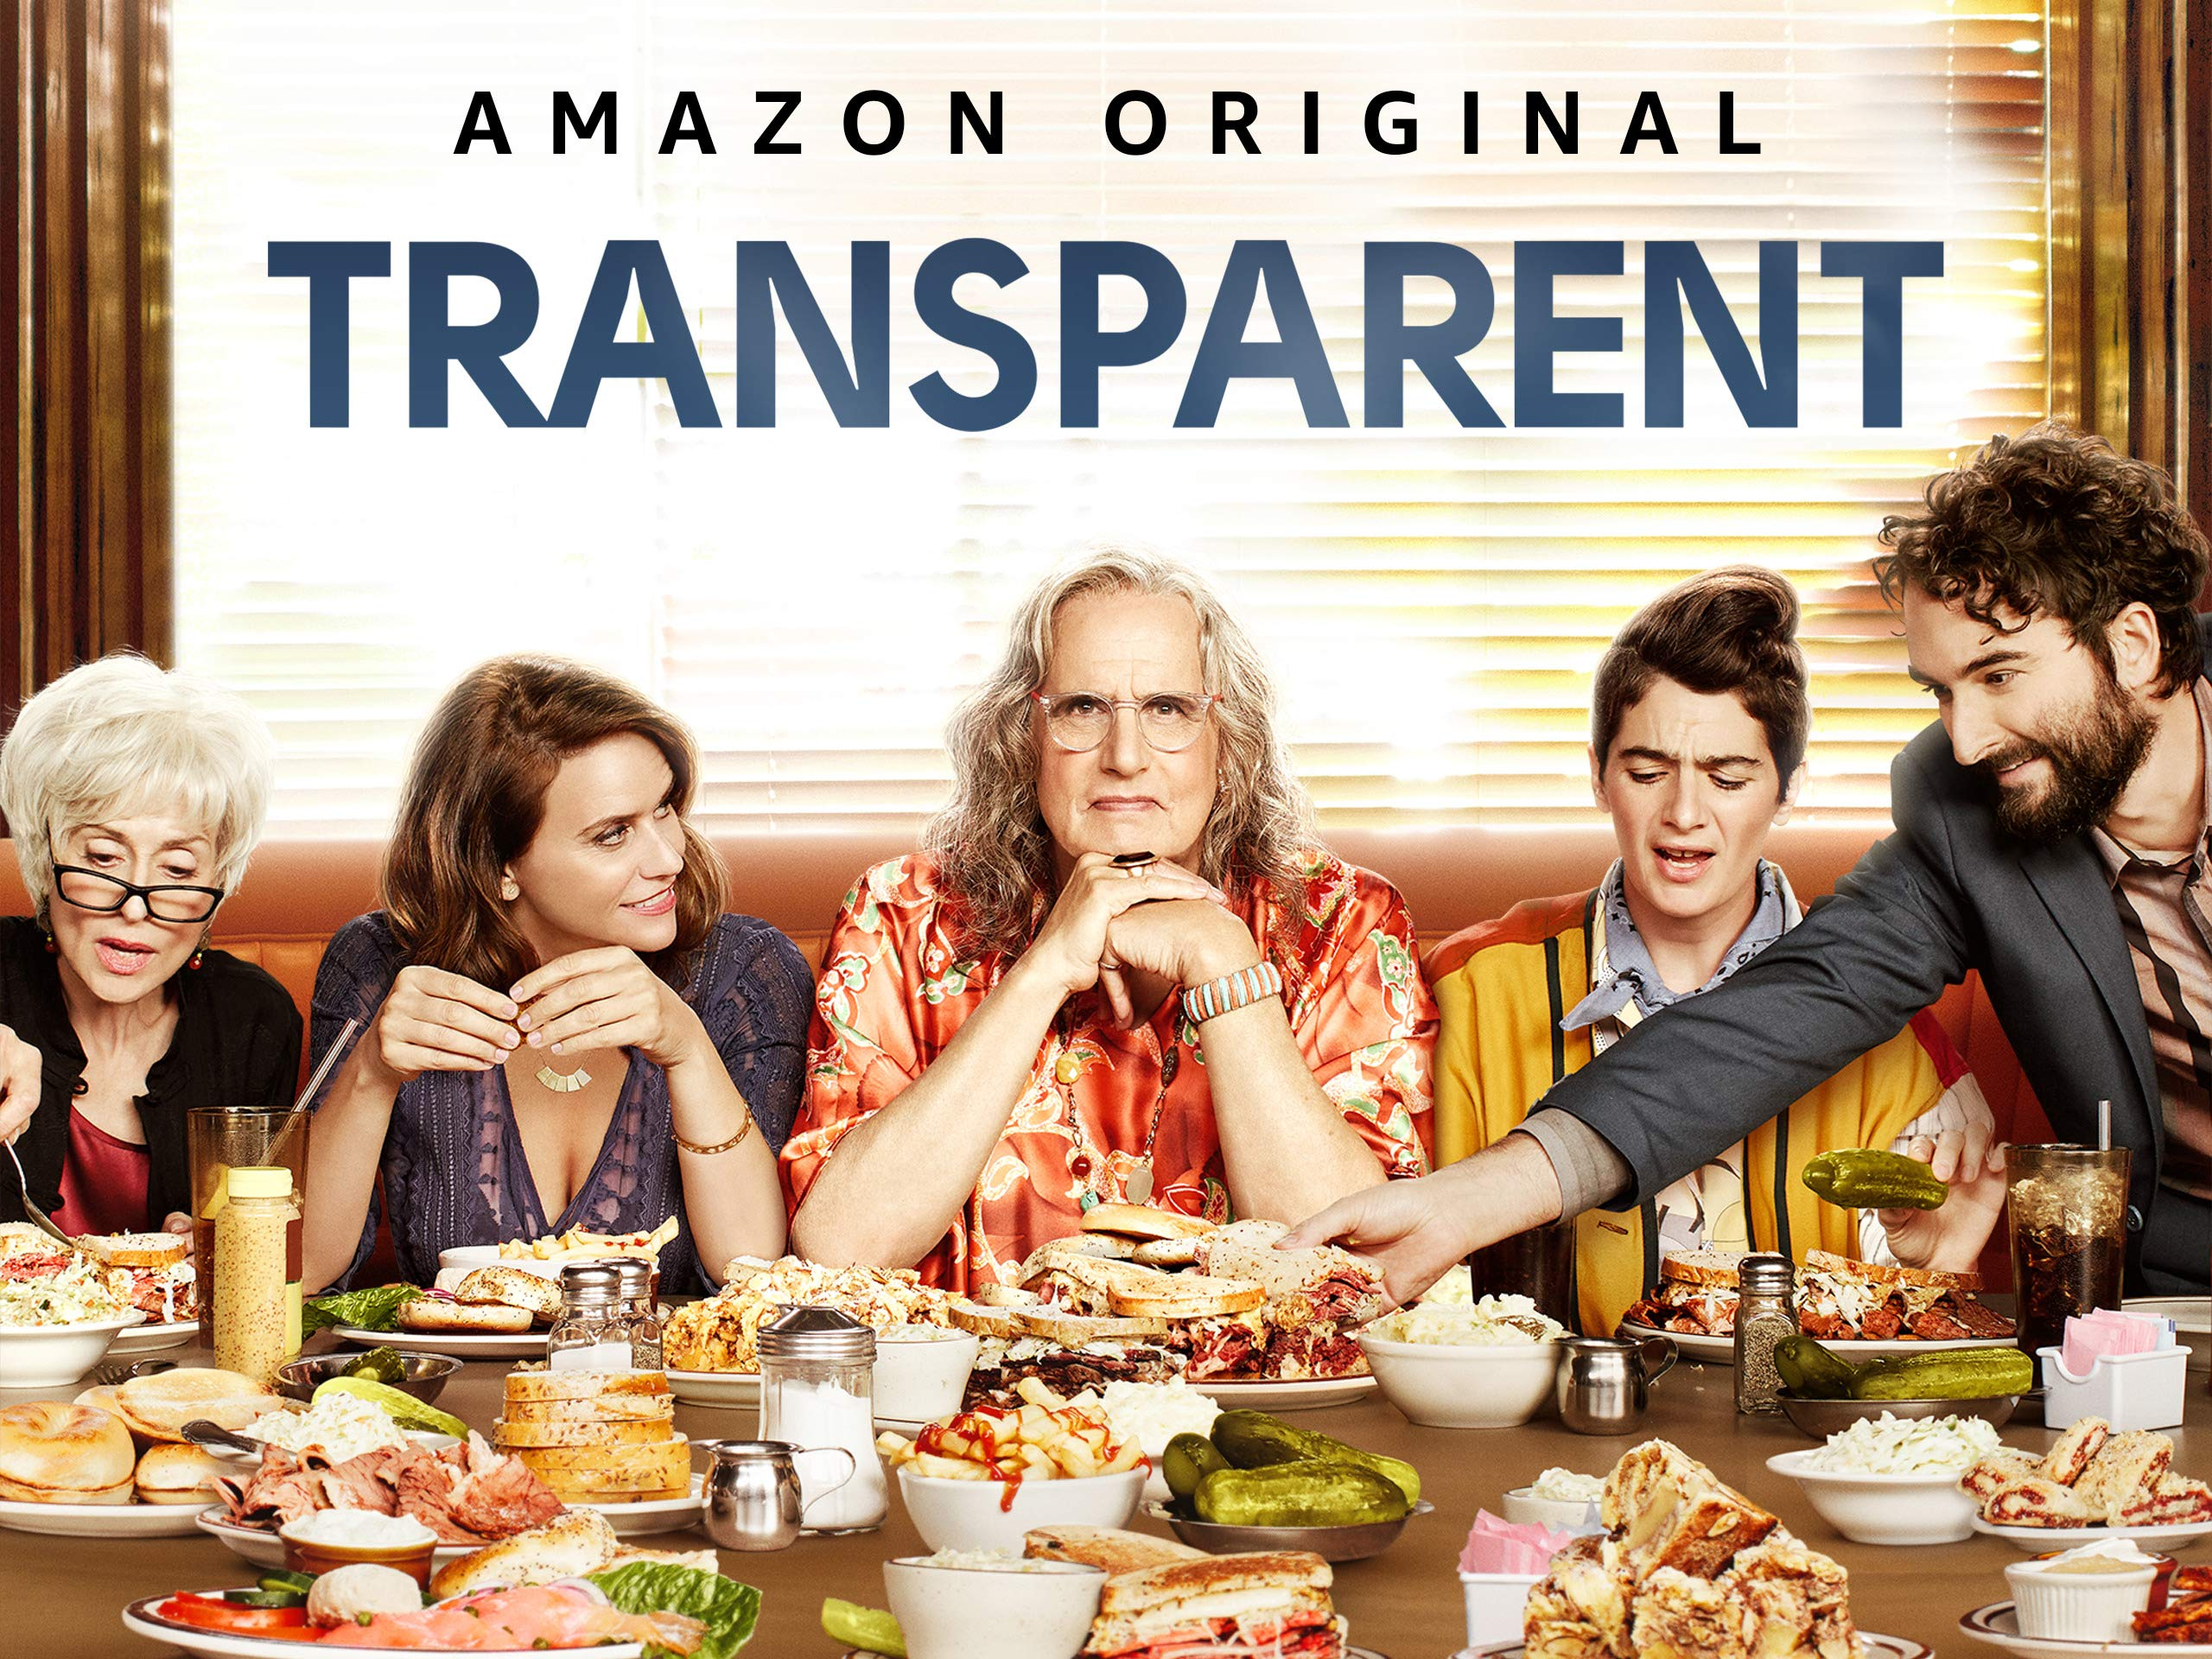 Transparent Amazon